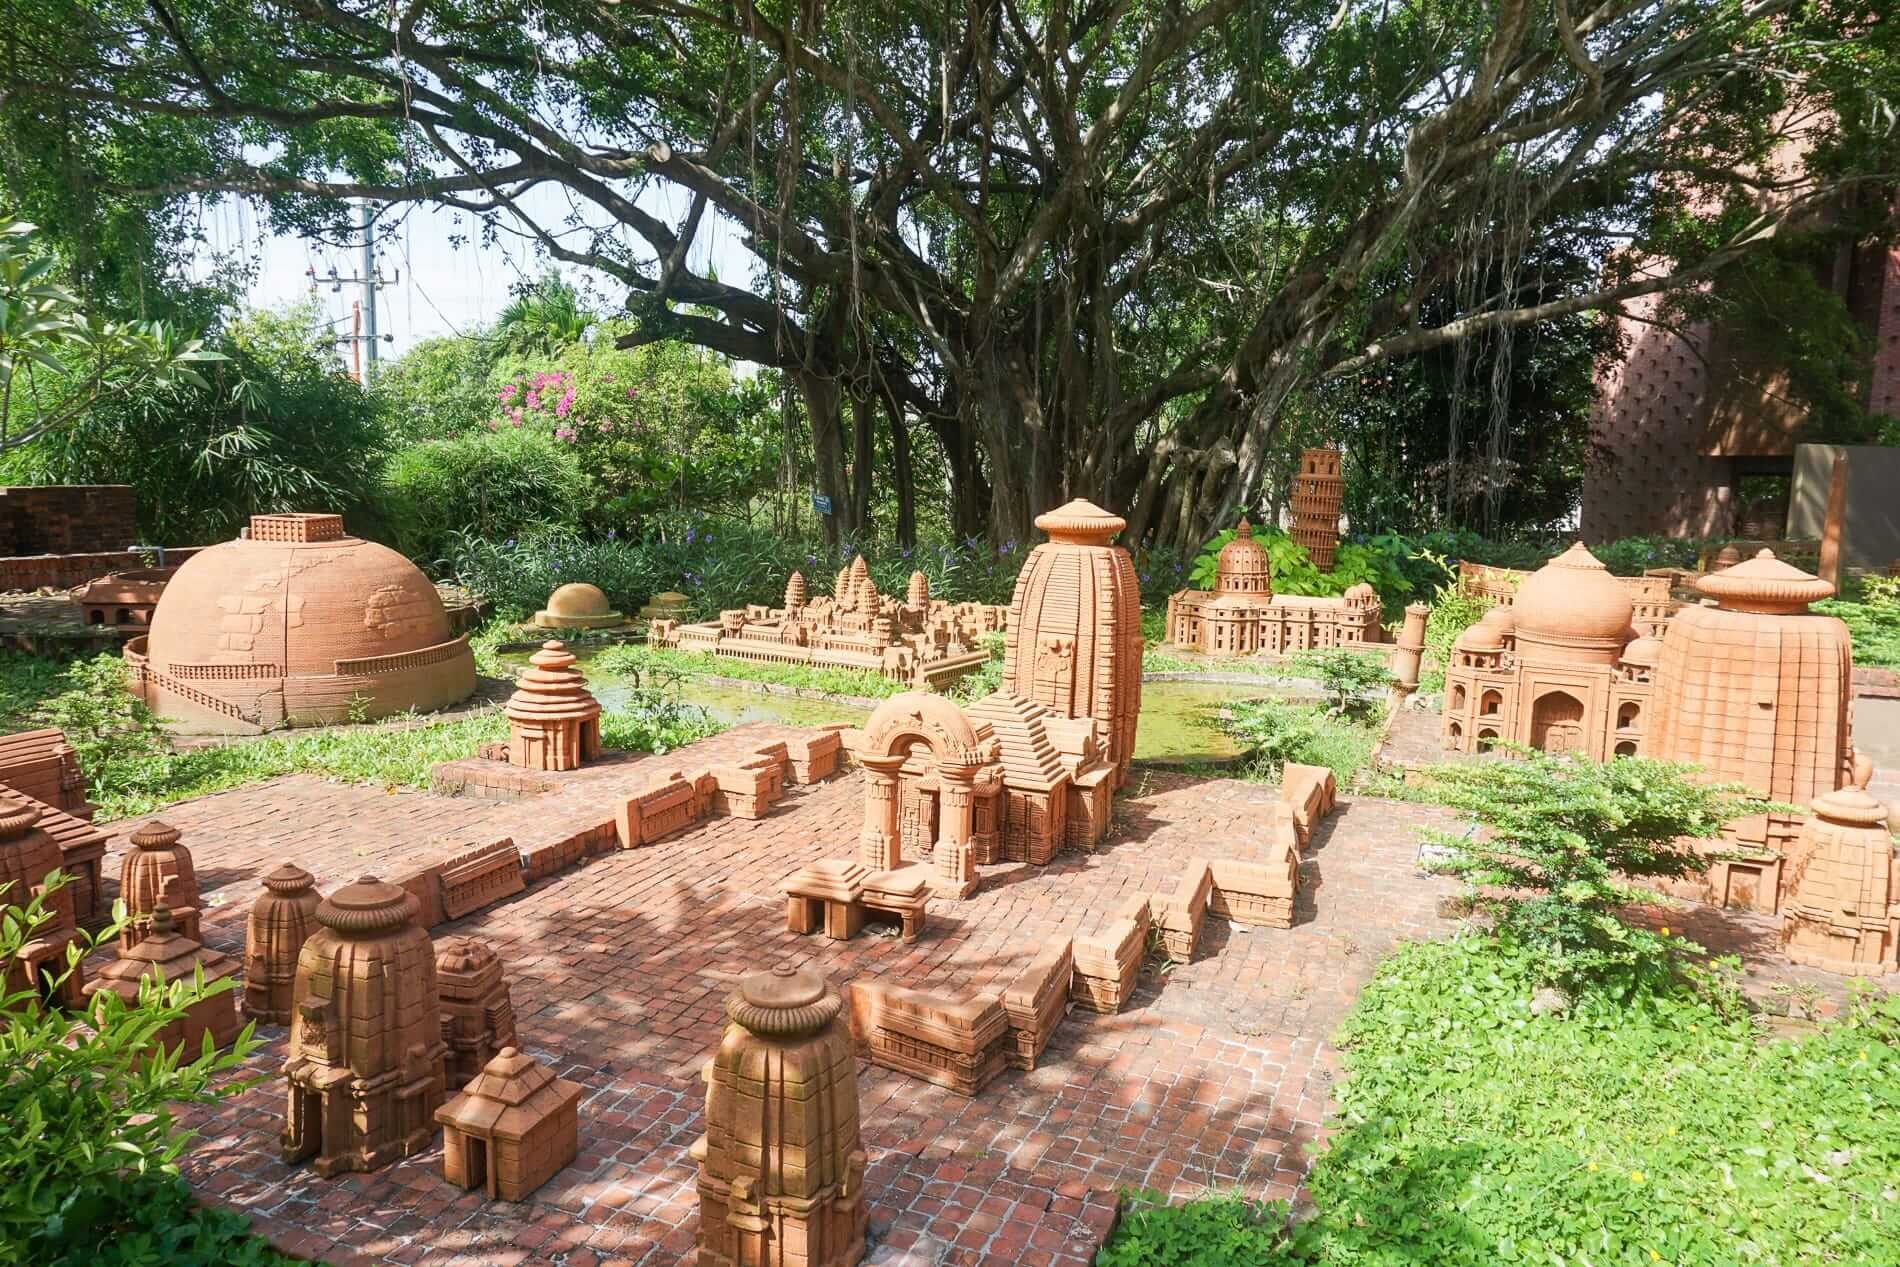 Miniature terracotta replicas - Pottery Village